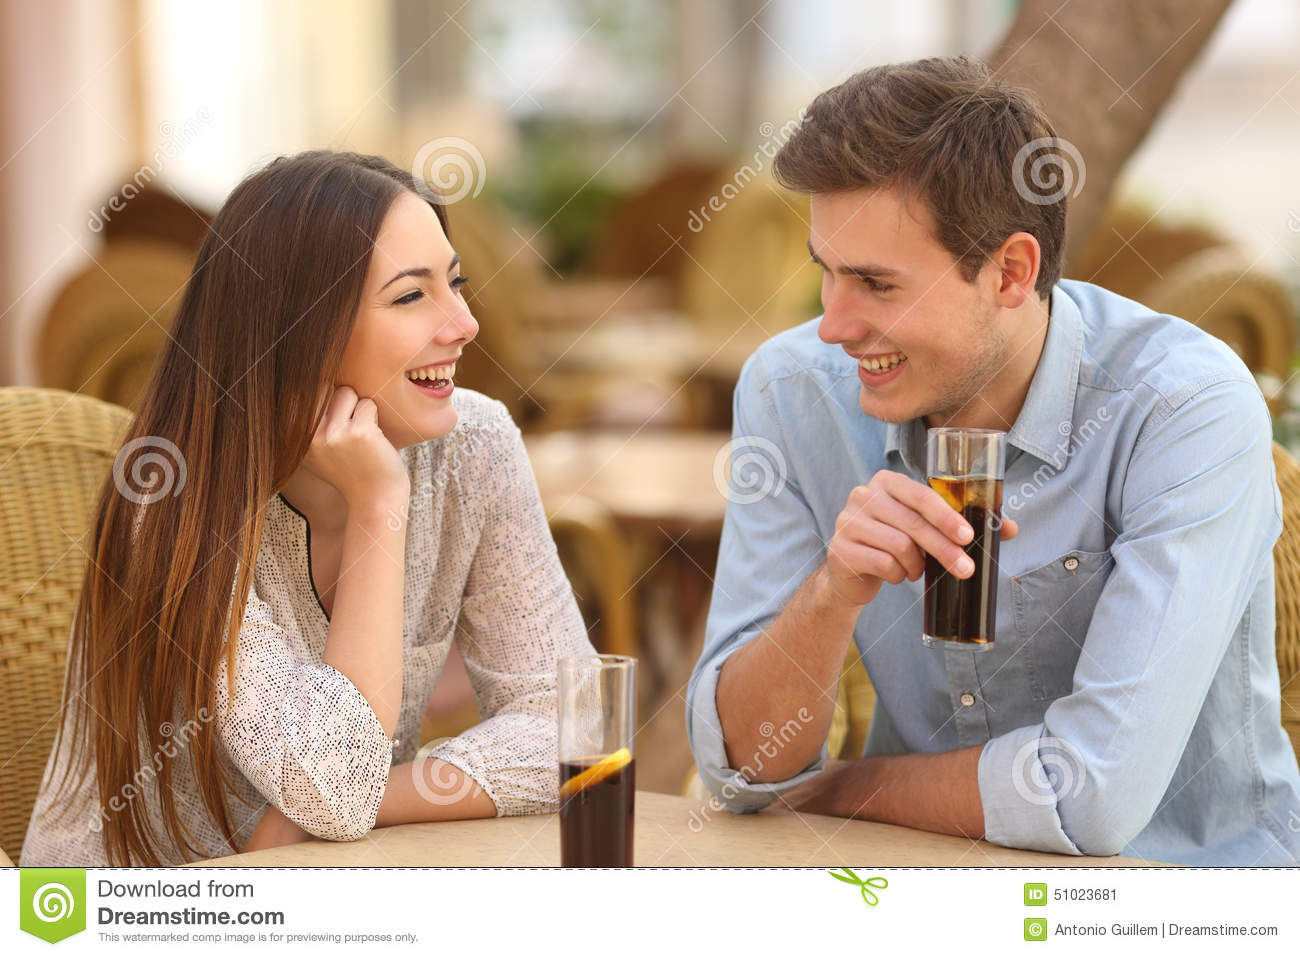 Alcoholics dating each other